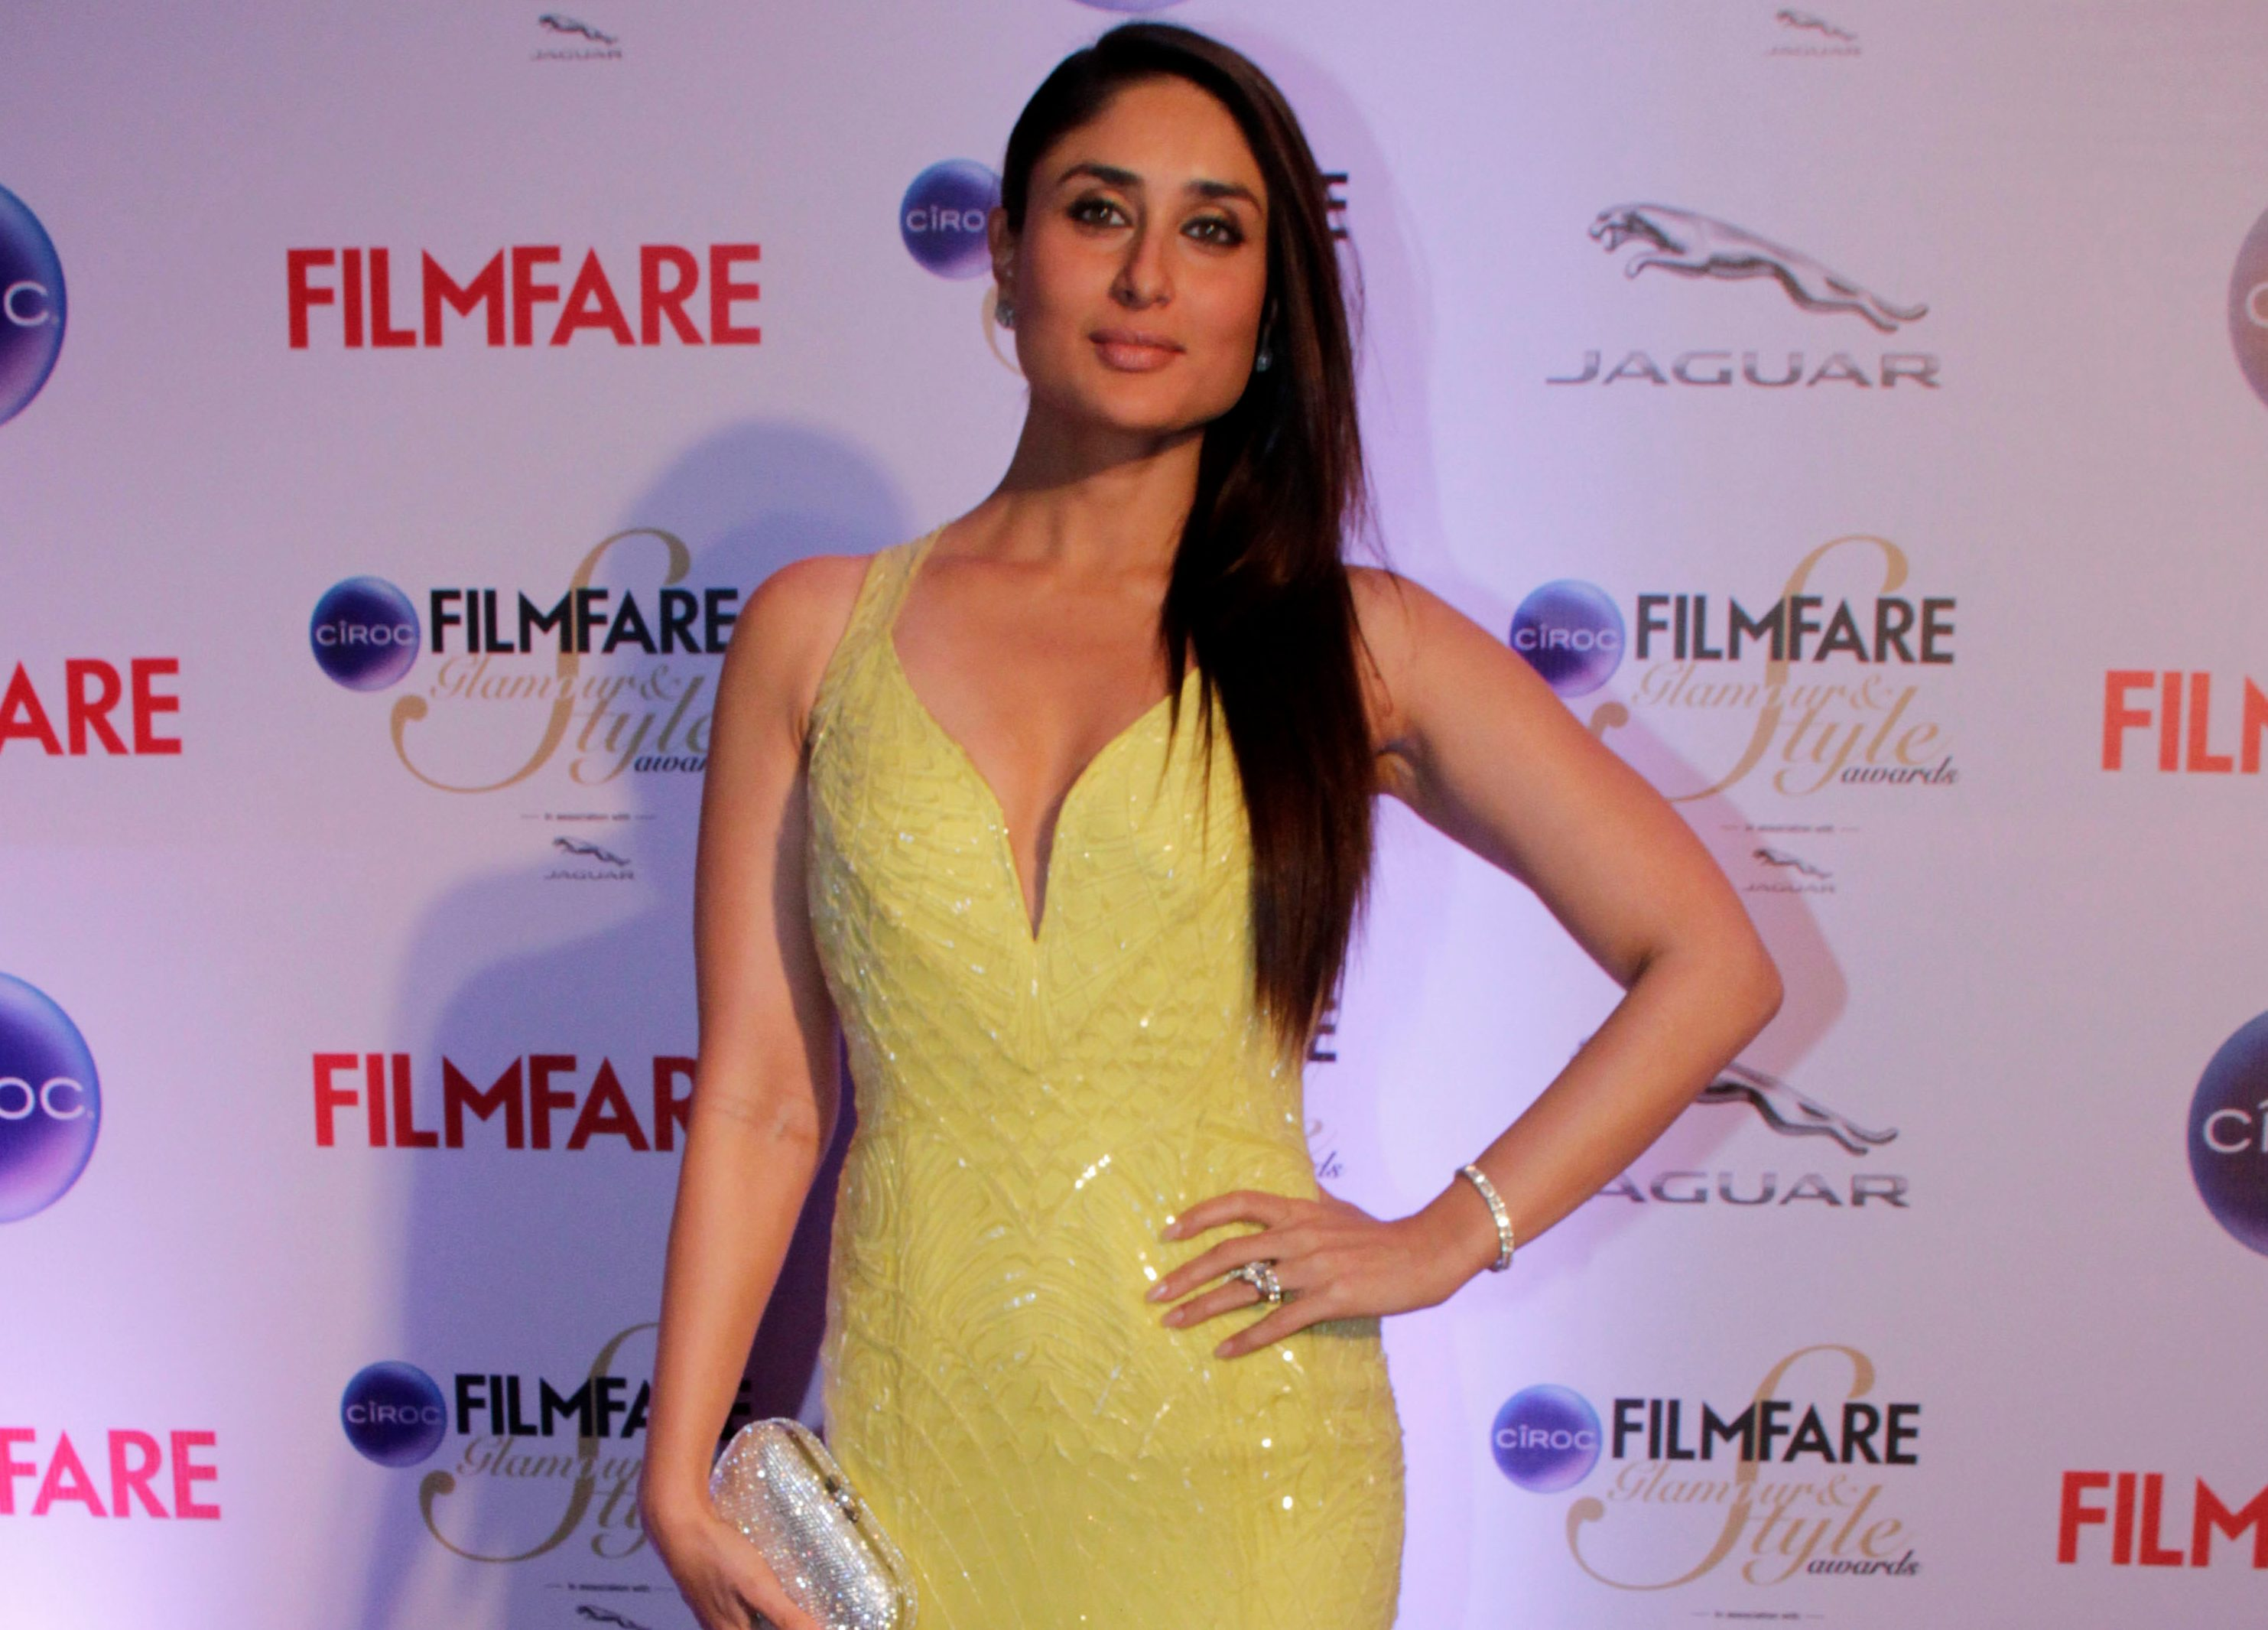 Kareena Kapoor refuses to act her age as she takes down cruel trolls